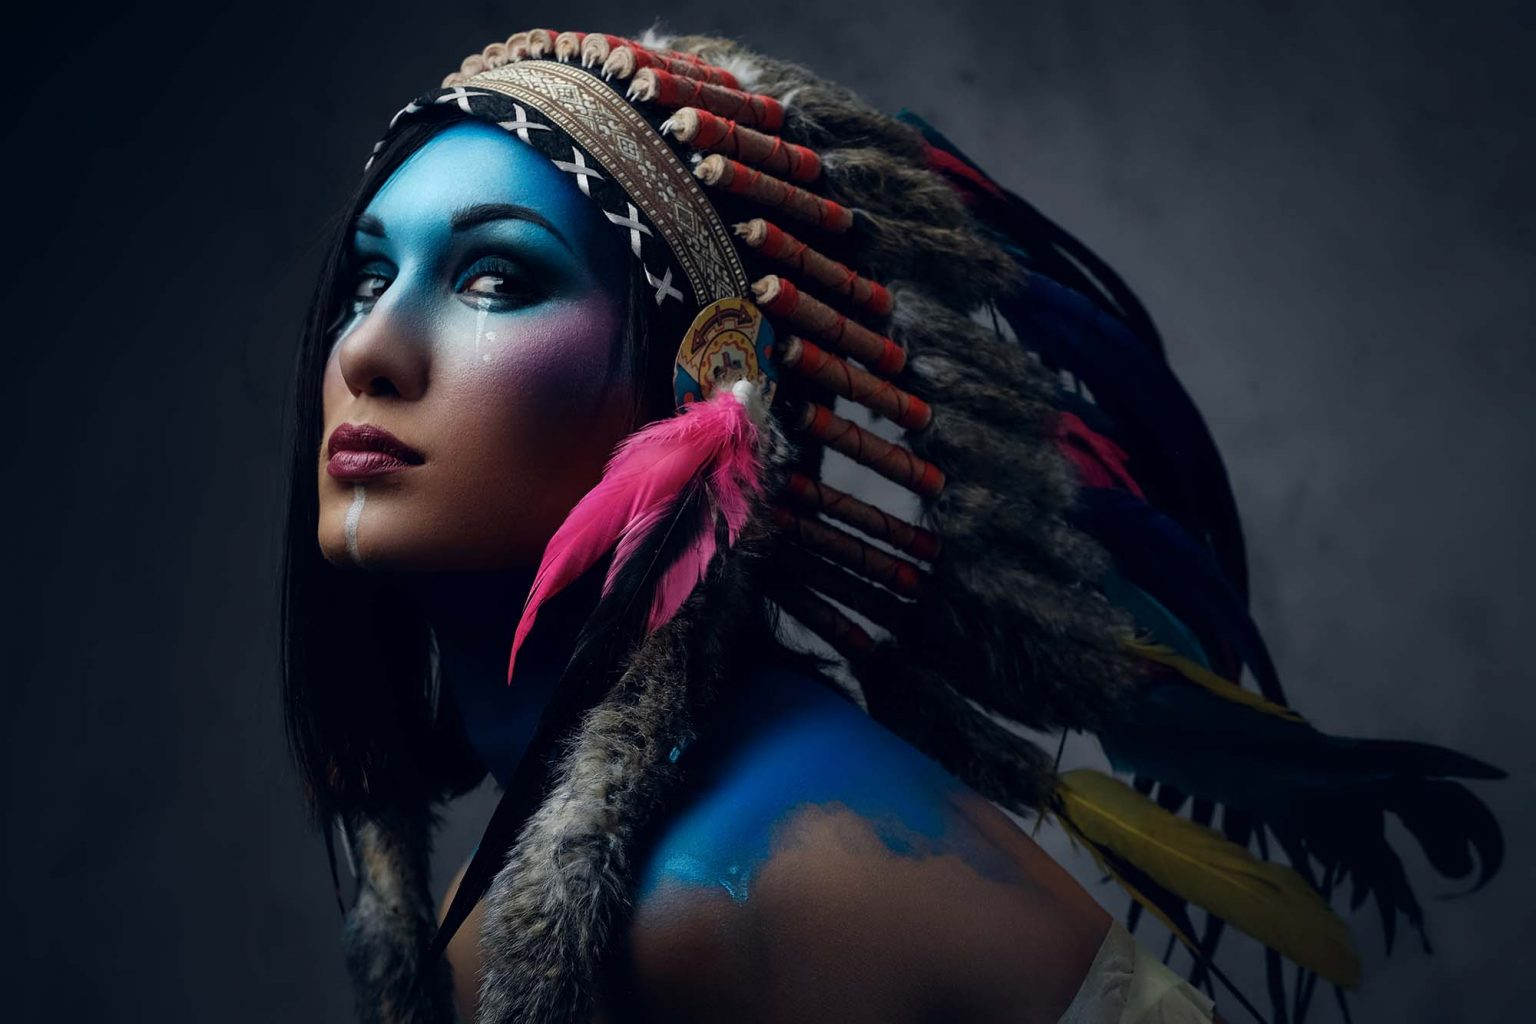 female with indian feather hat and colorful makeup UK47EWD